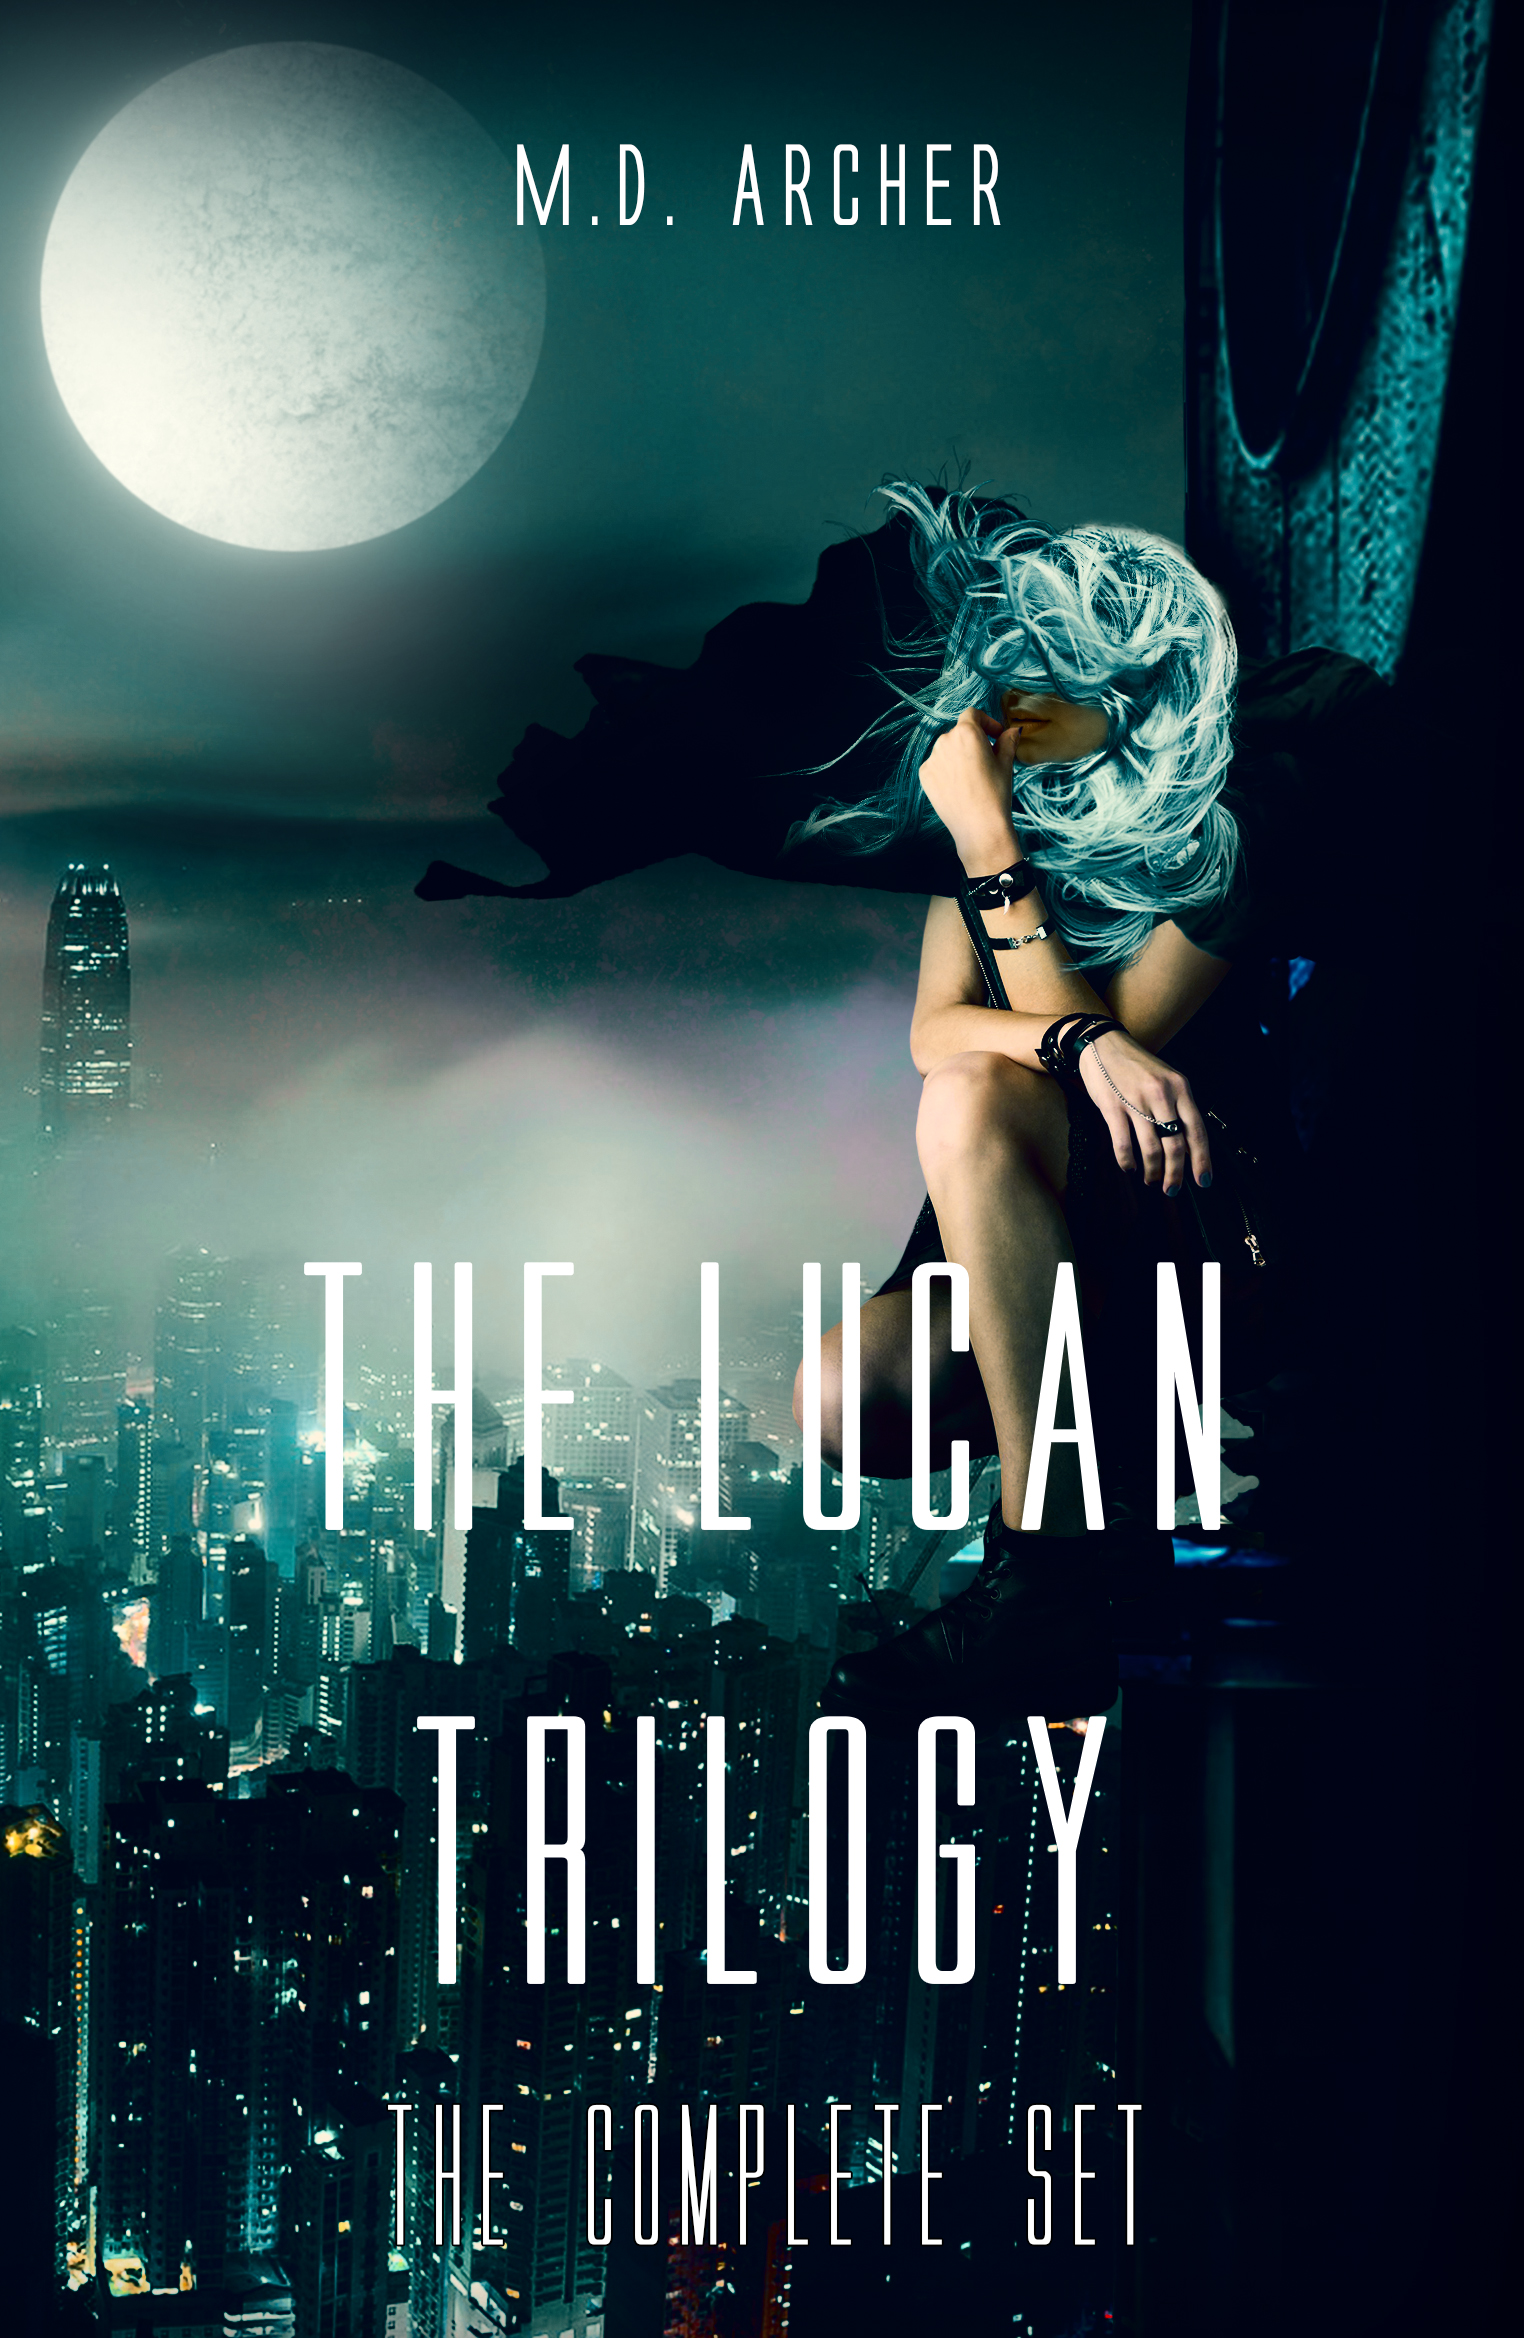 Books in the Iamos Trilogy